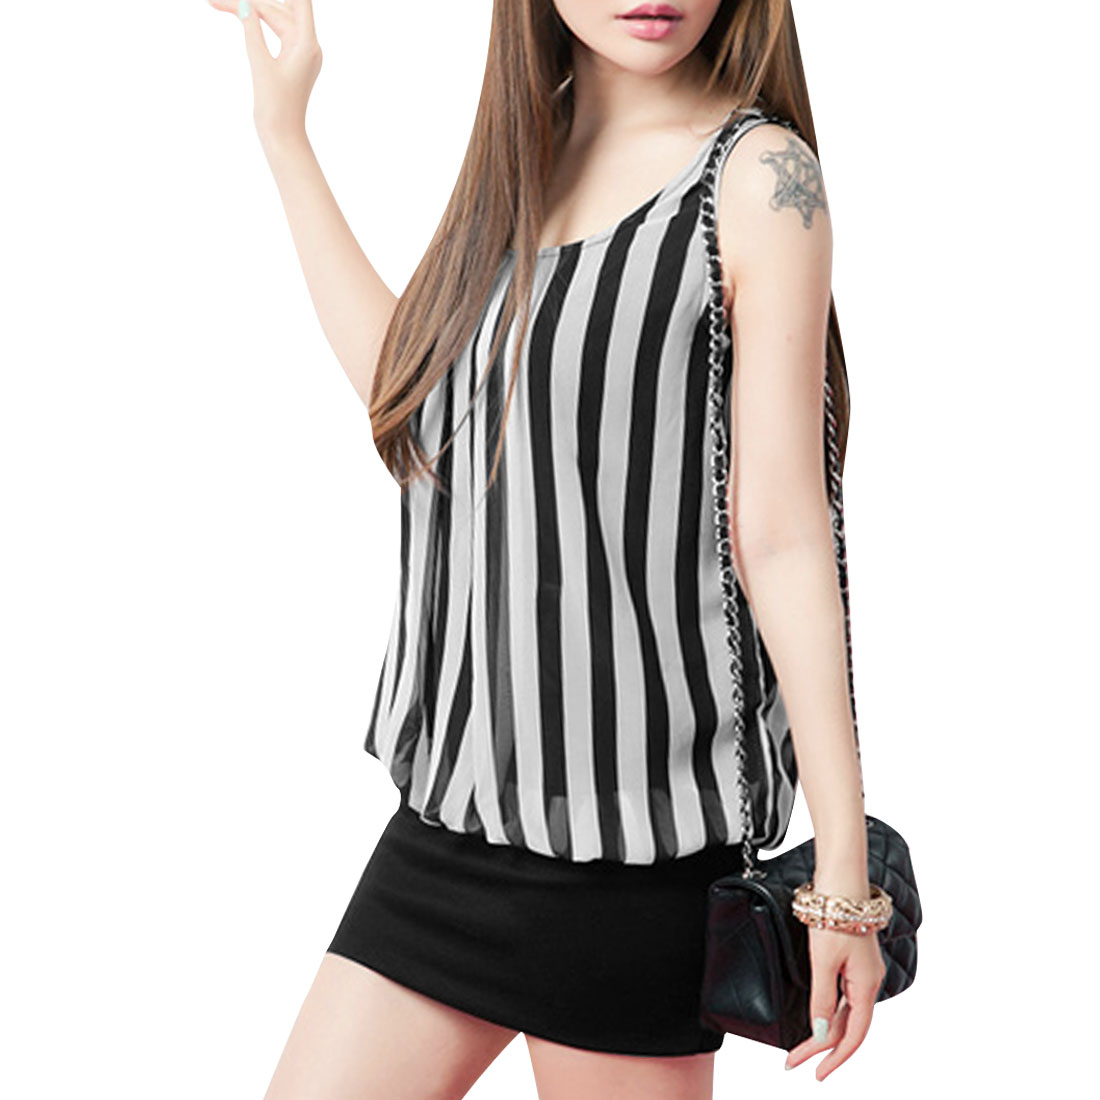 Lady Black White Stripes Design Round Neck Sleeveless Patchwork Dress XS